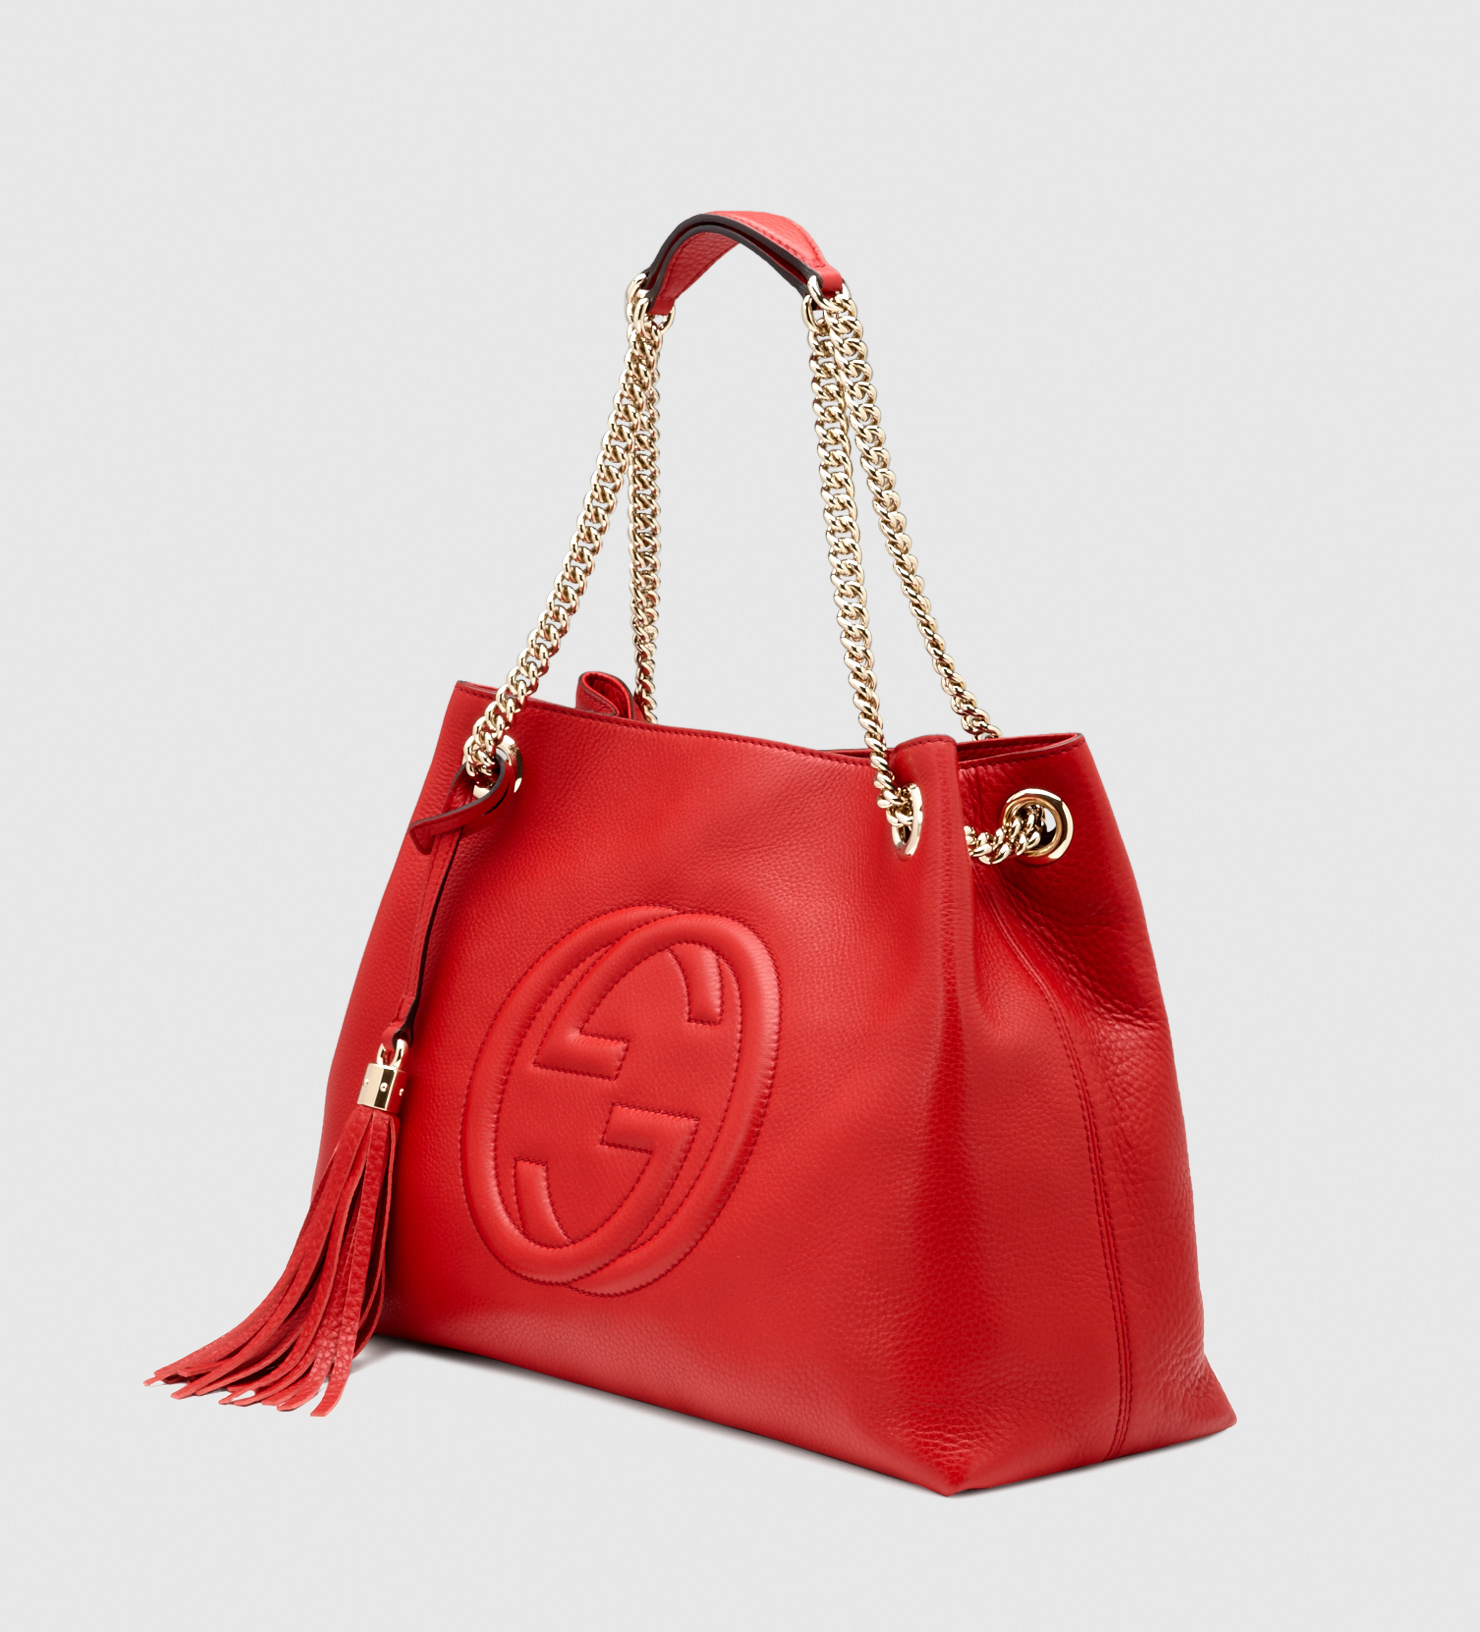 lyst gucci soho leather shoulder bag in red. Black Bedroom Furniture Sets. Home Design Ideas